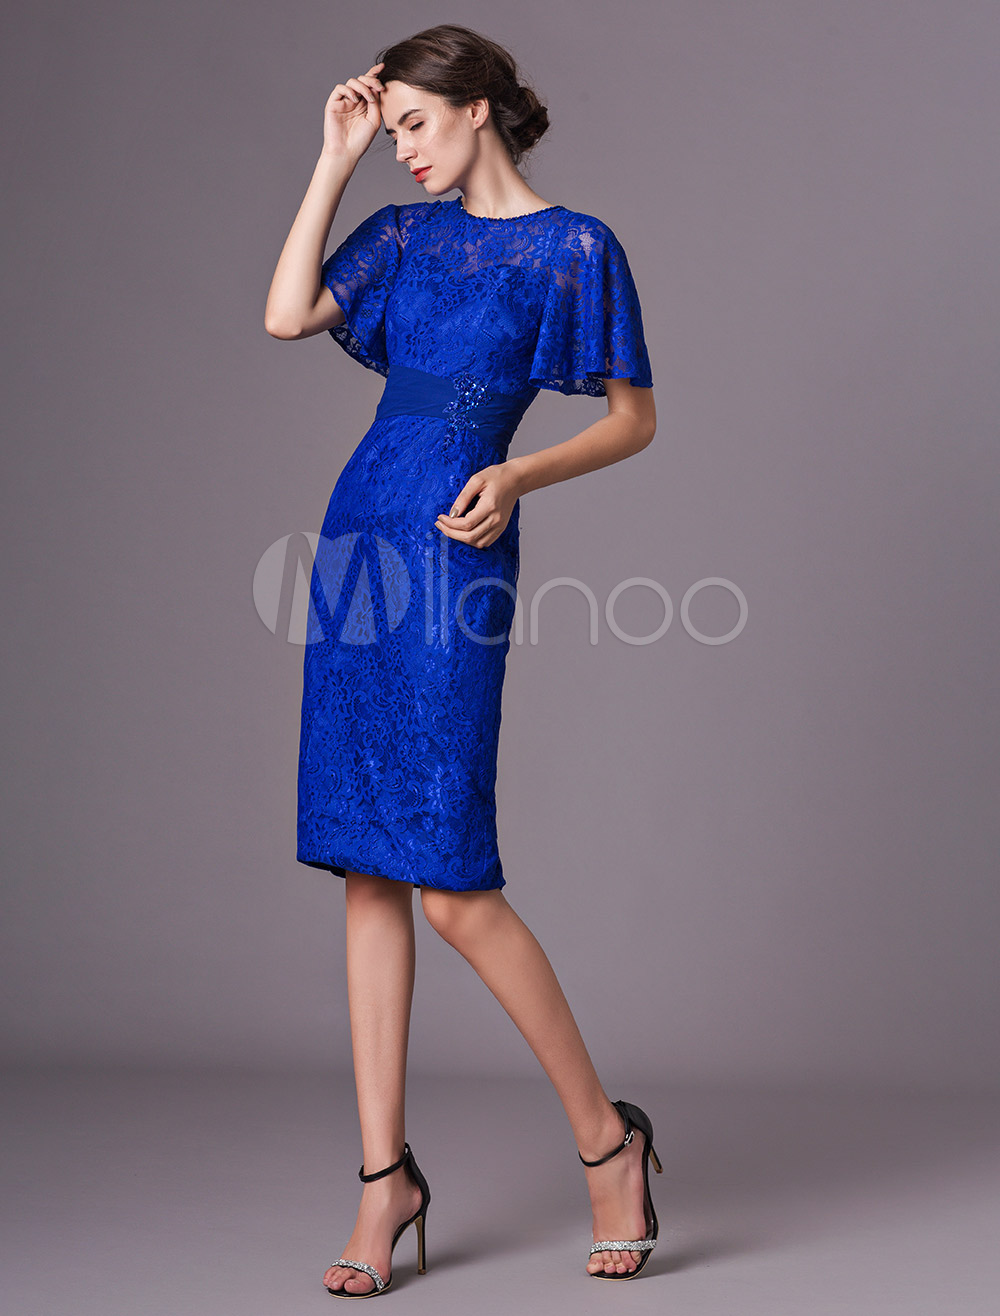 Mother Of The Bride Dresses Lace Short Royal Blue Cocktail Dress Sheath Keyhole Knee Length Wedding Guest Dress